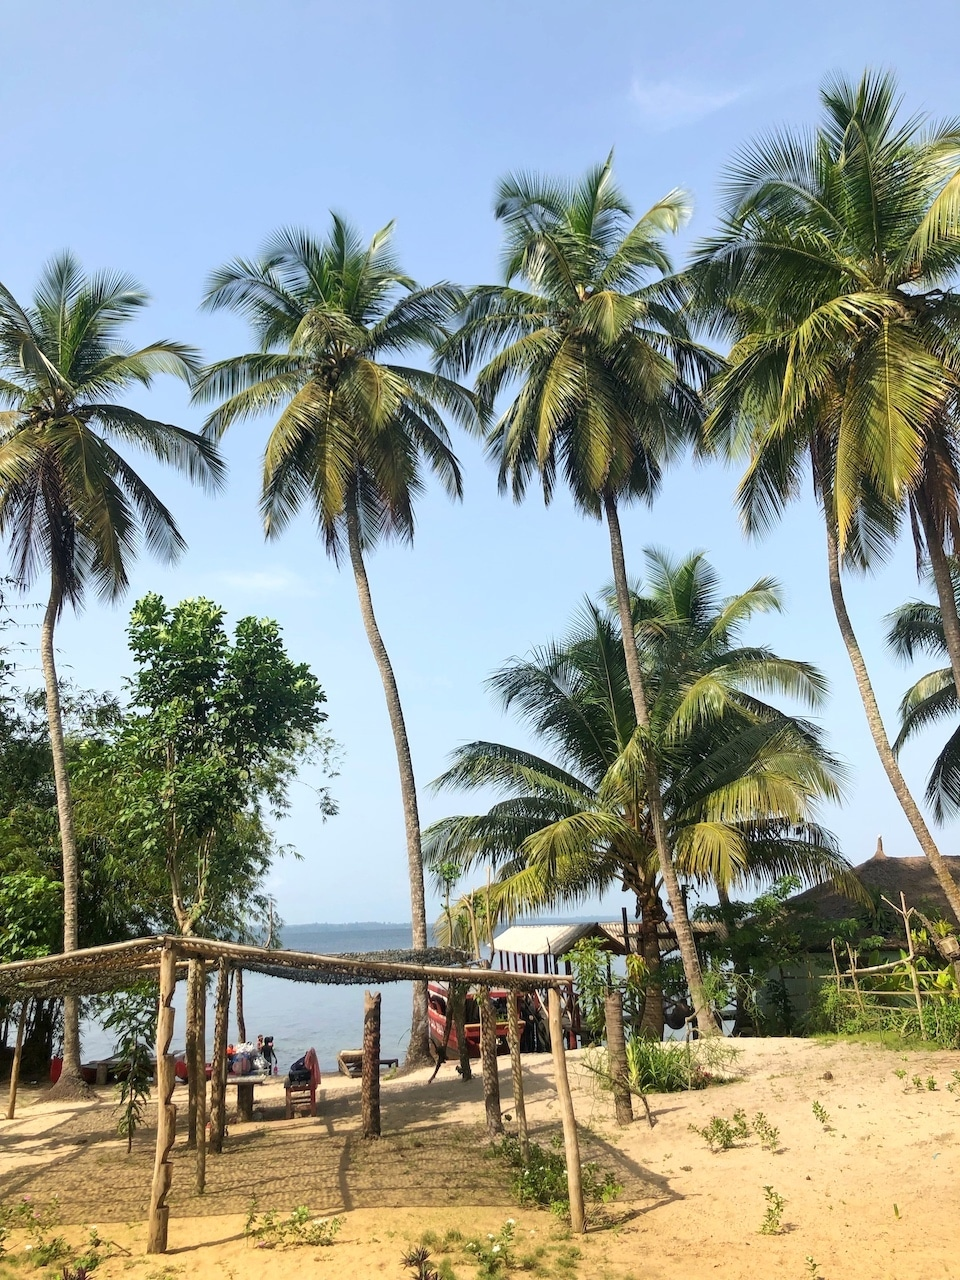 Photos to inspire you to visit Côte d'Ivoire